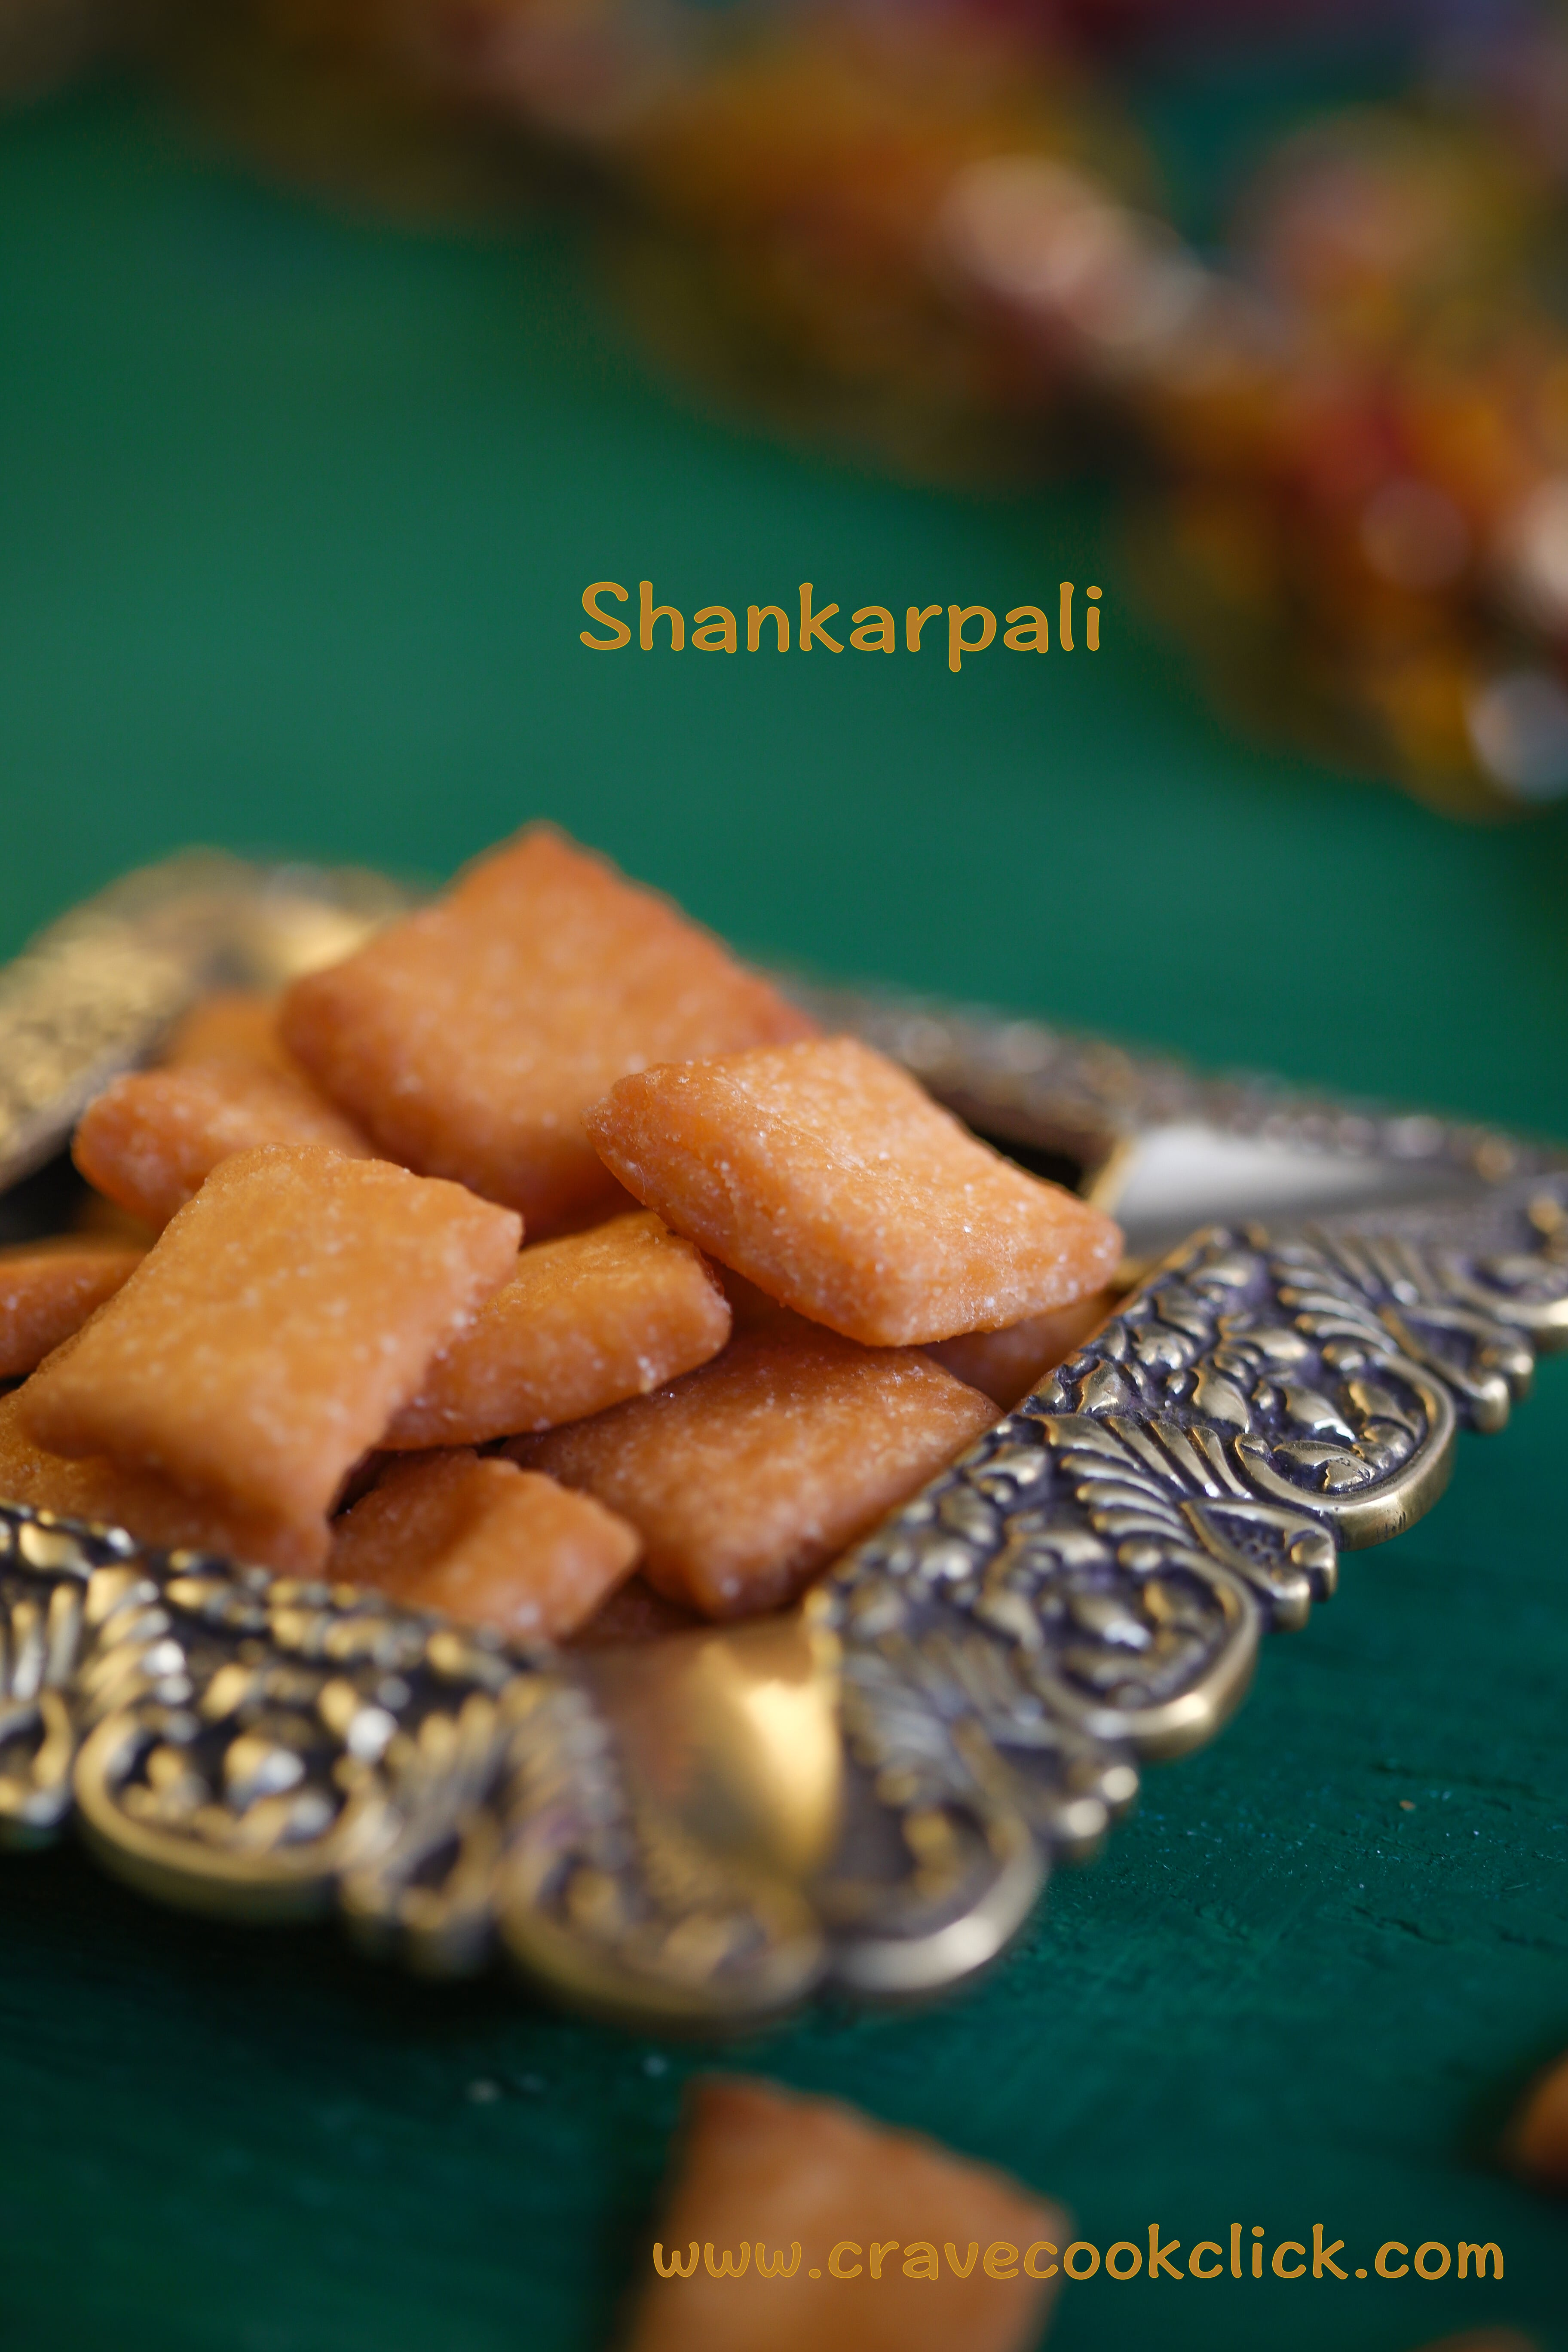 Shakarpali Recipe, How to make Shankarpali, Diwali sweets